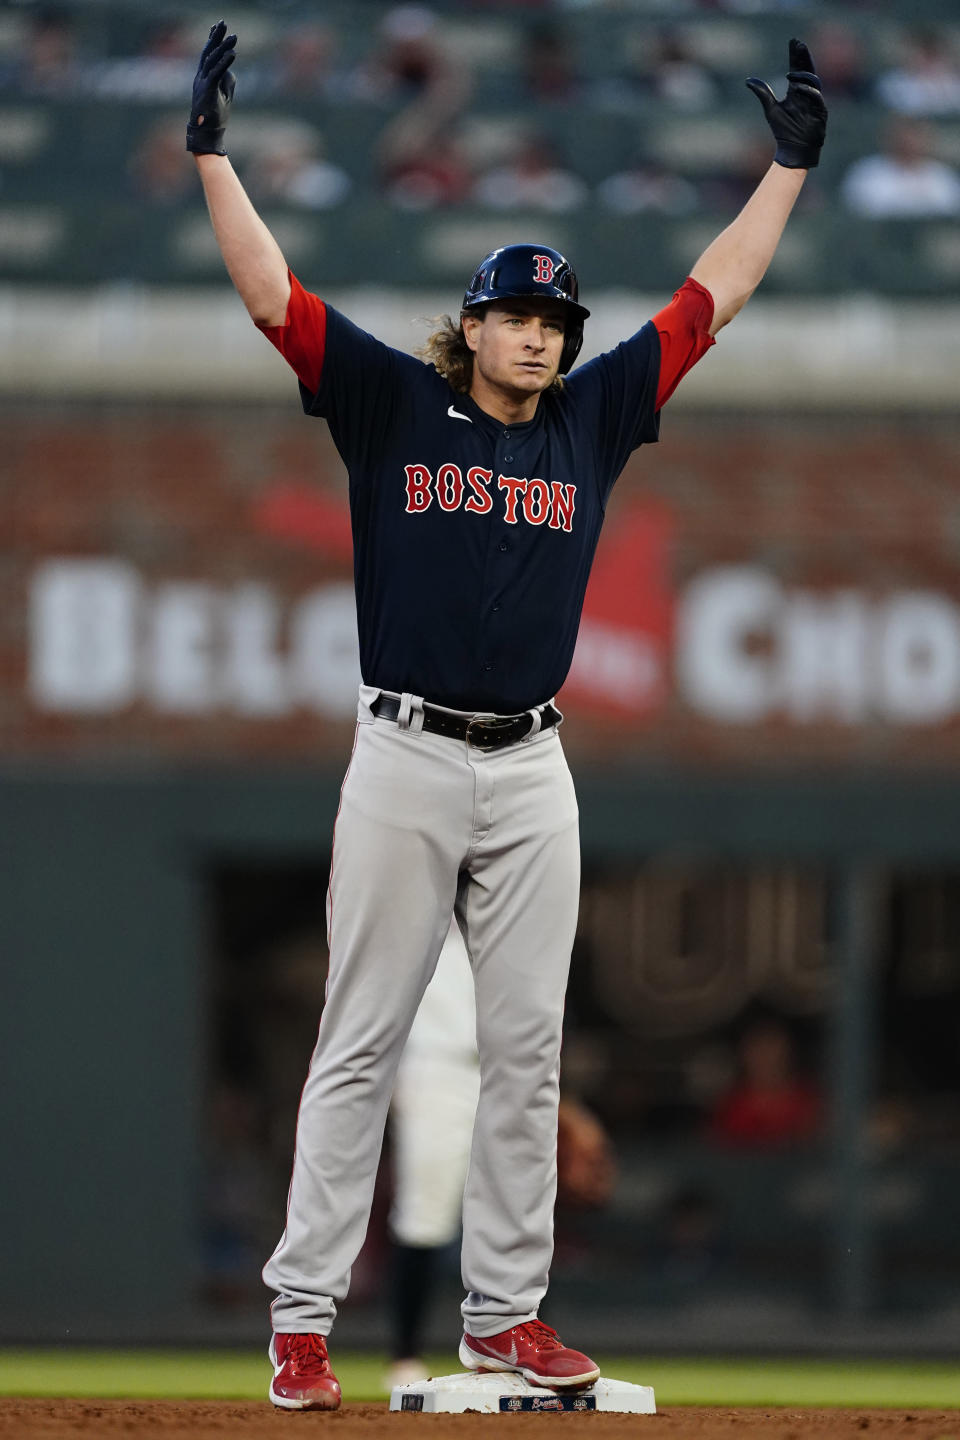 Boston Red Sox starting pitcher Garrett Richards reacts at second base after driving in a run with a double in the fourth inning of a baseball game against the Atlanta Braves Wednesday, June 16, 2021, in Atlanta. (AP Photo/John Bazemore)